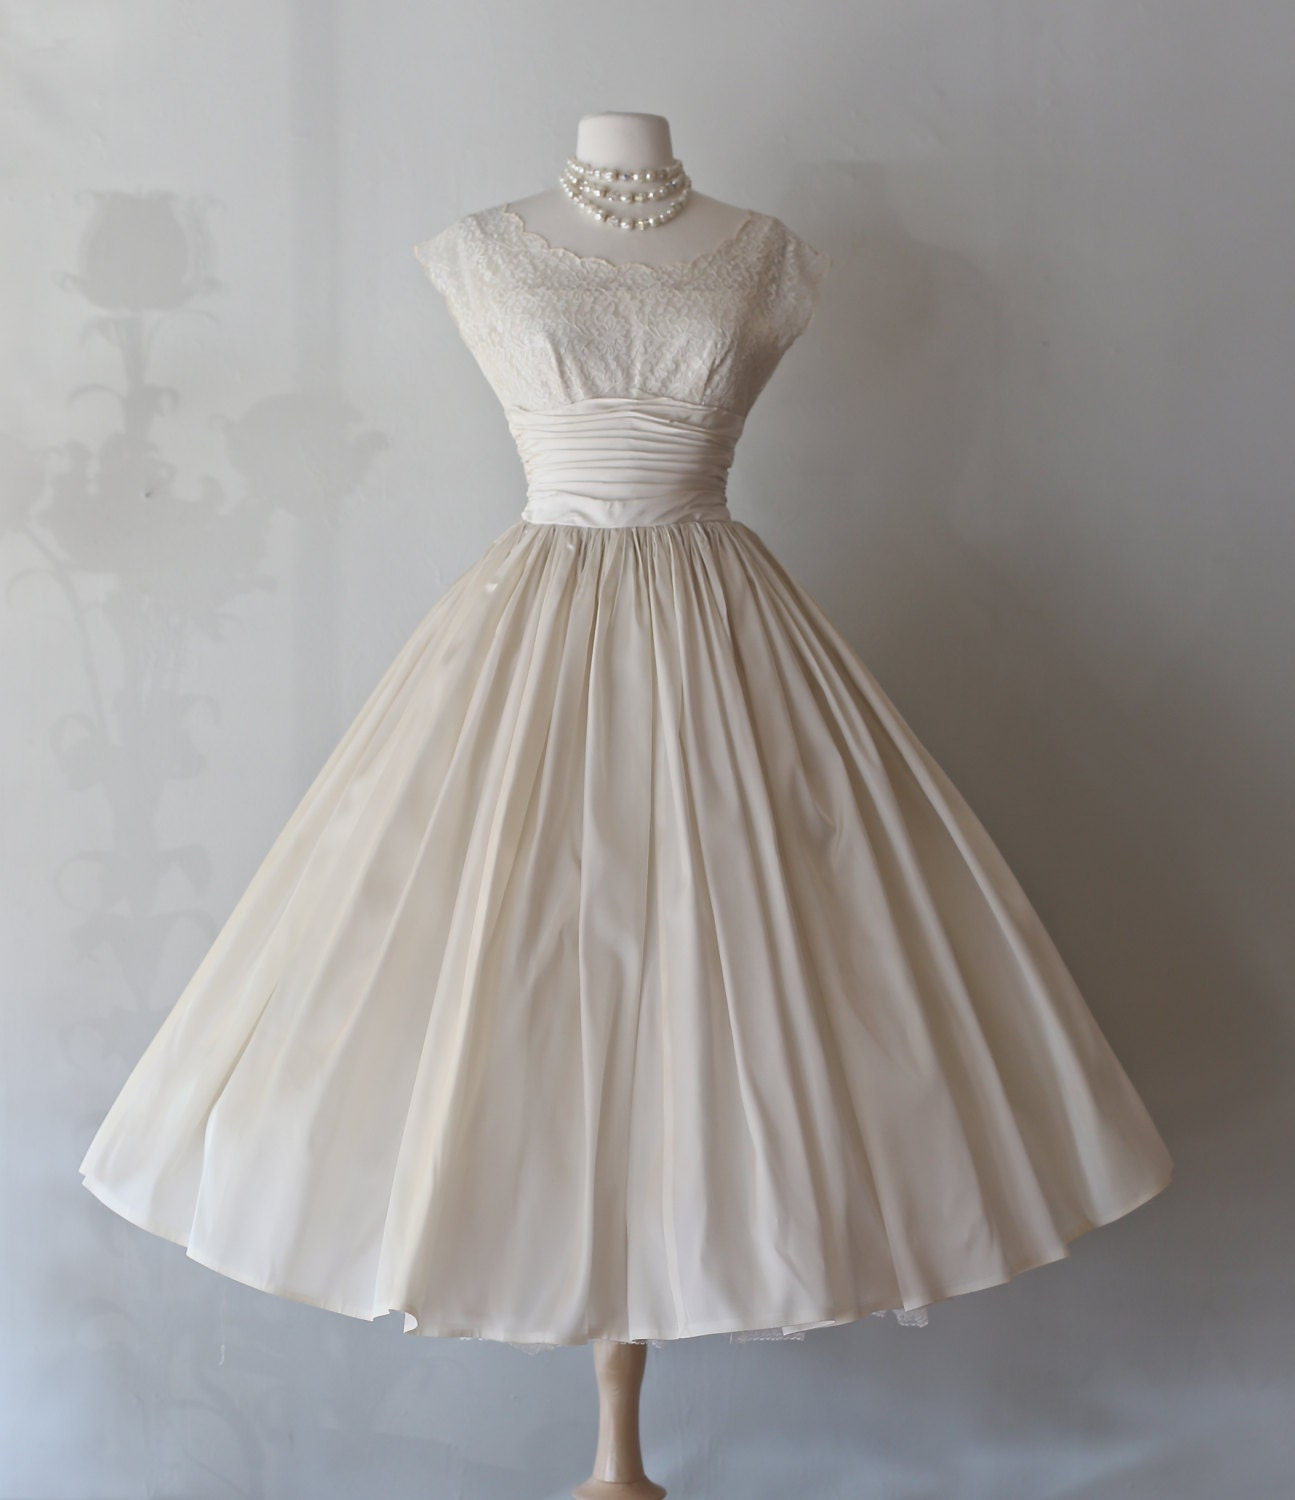 Vintage 1950 39 s tea length wedding dress 50s wedding for 1950 wedding dresses tea length